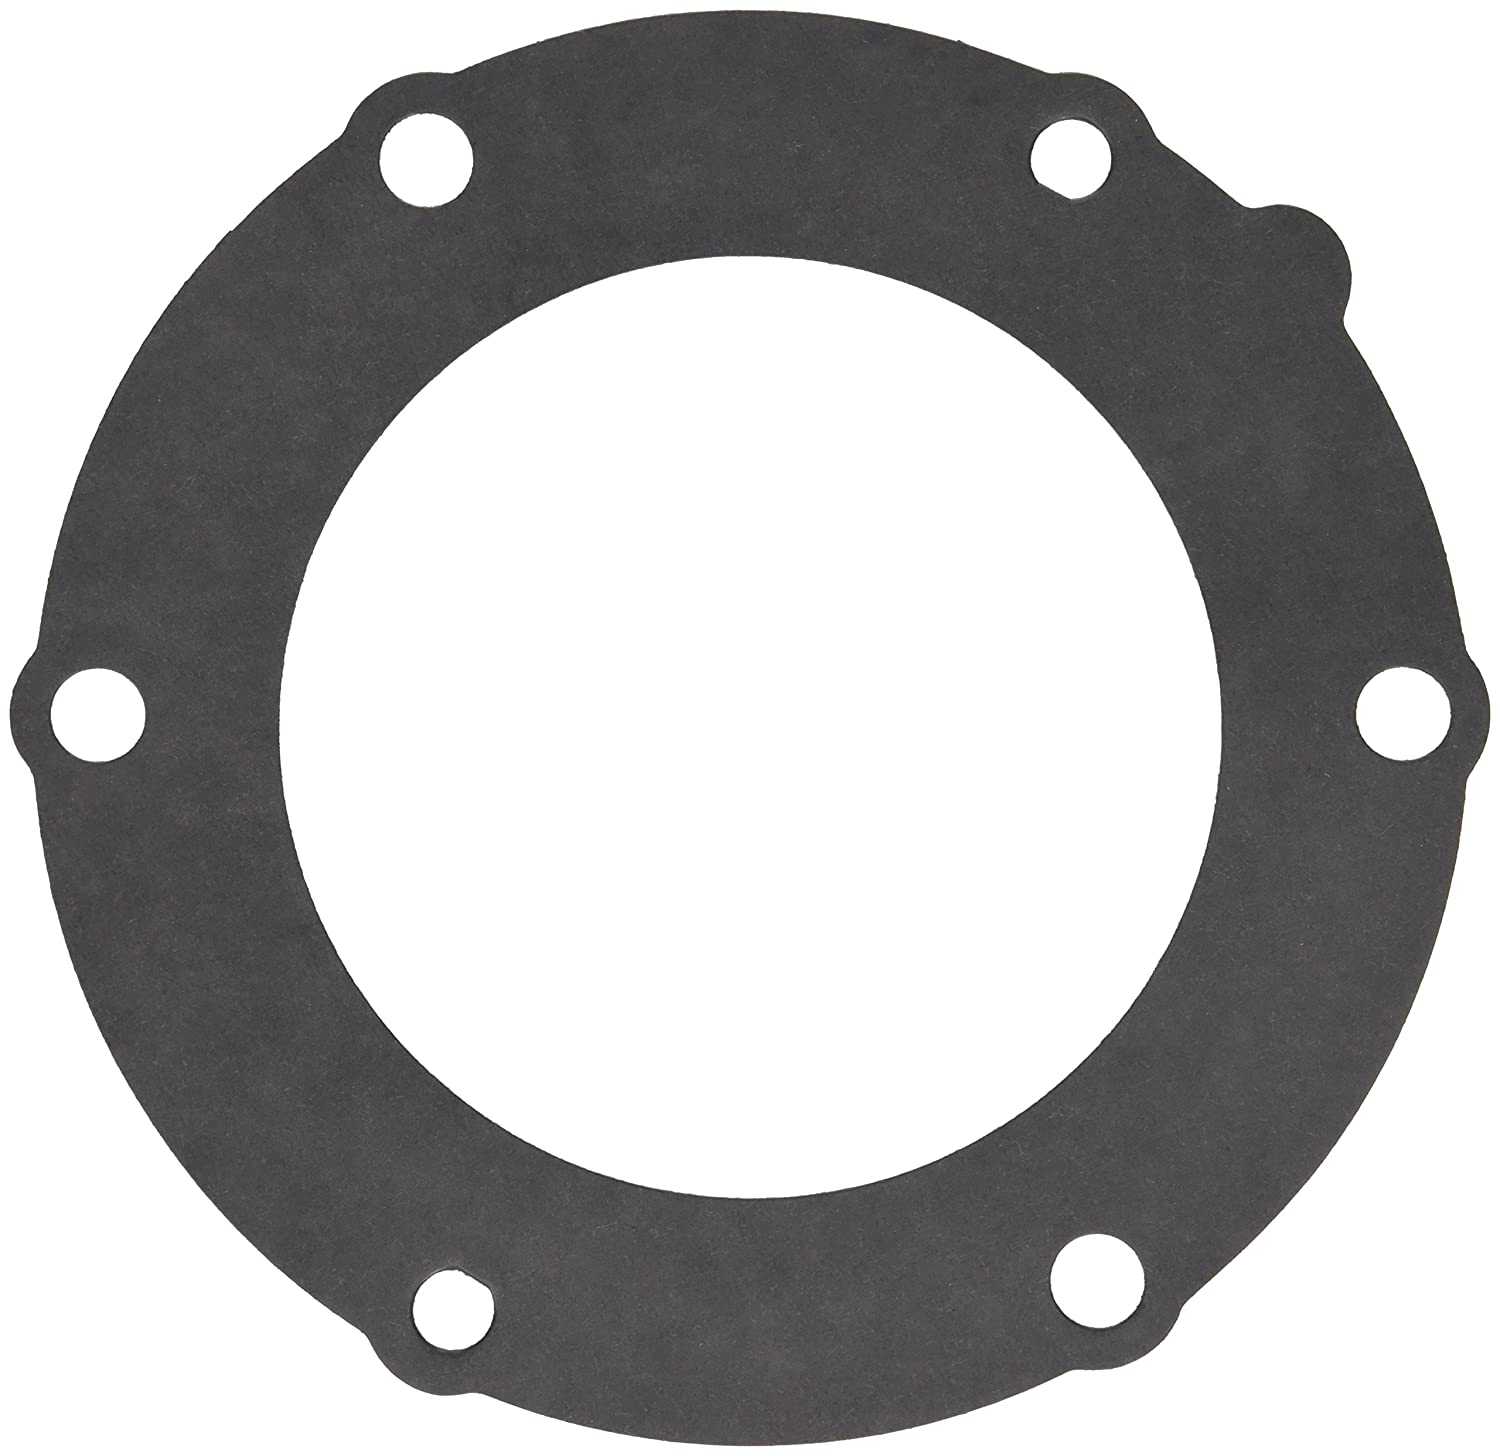 Genuine GM 24245110 Transfer Case Adapter Gasket General Motors